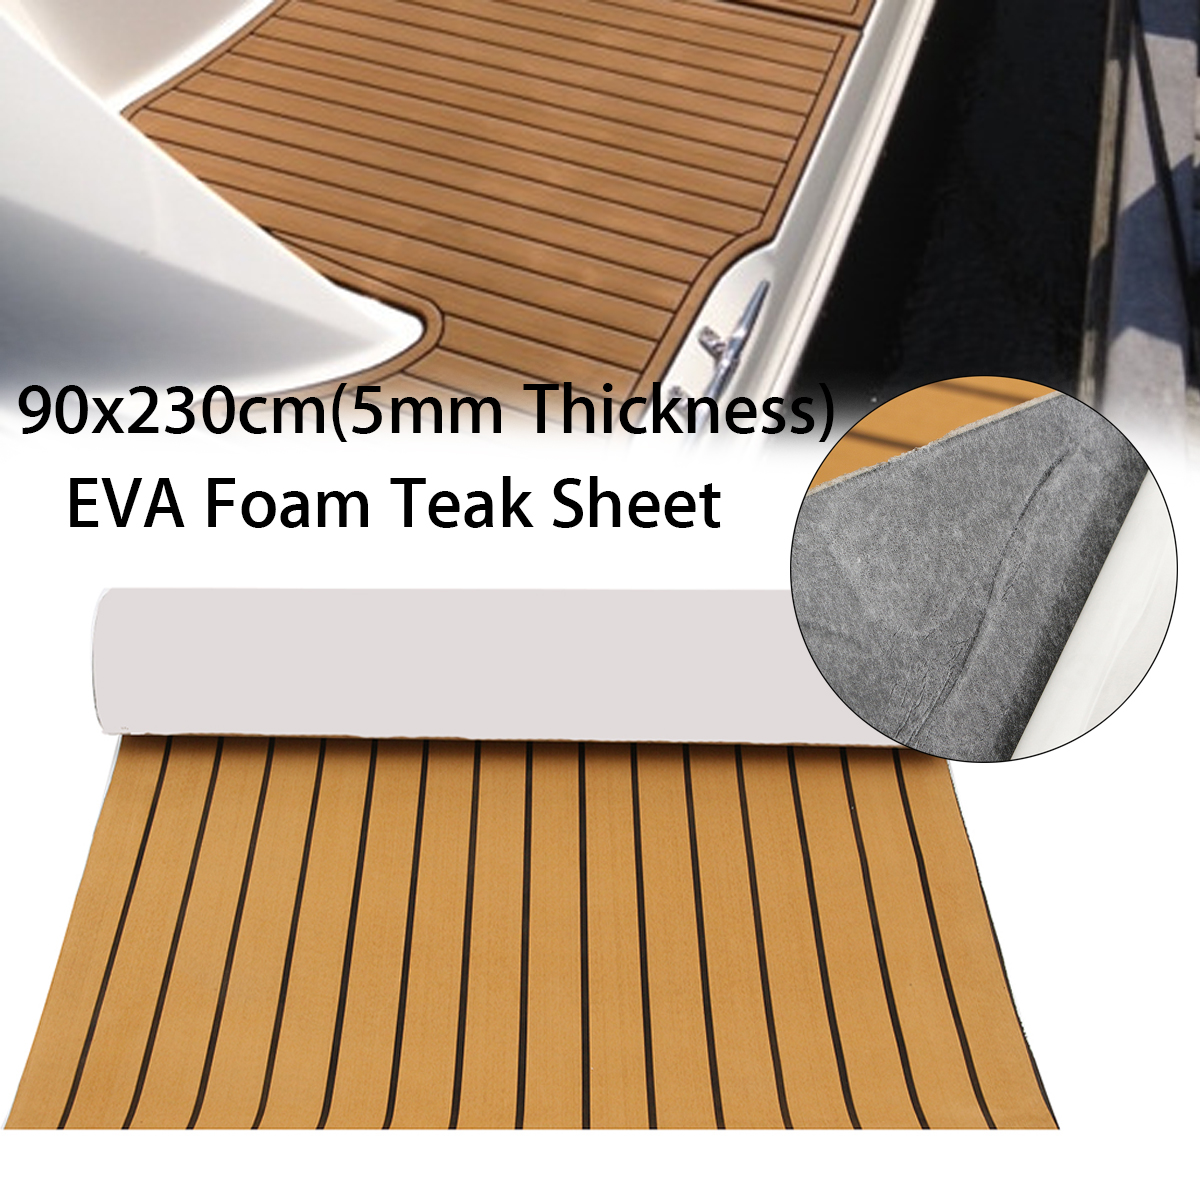 90x230cm Self-Adhesive EVA 5mm Foam Teak Sheet Boat Yacht Synthetic Decking Gold with Black Lines